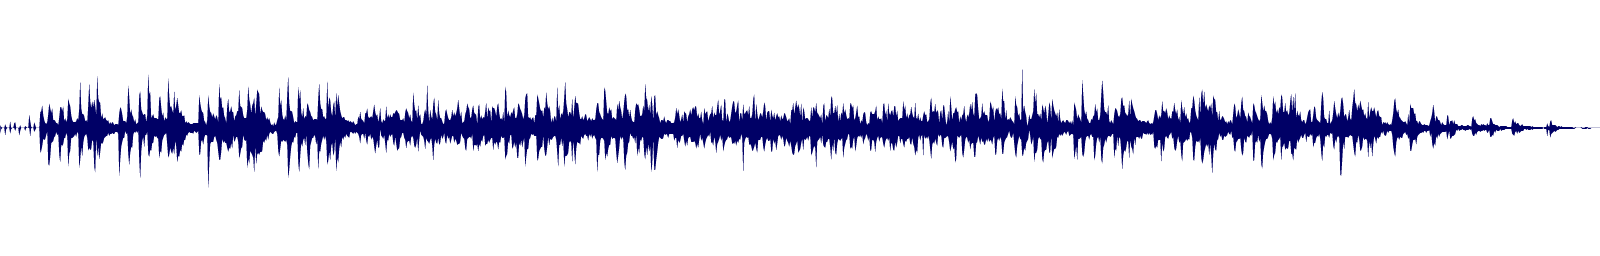 waveform of track #149729